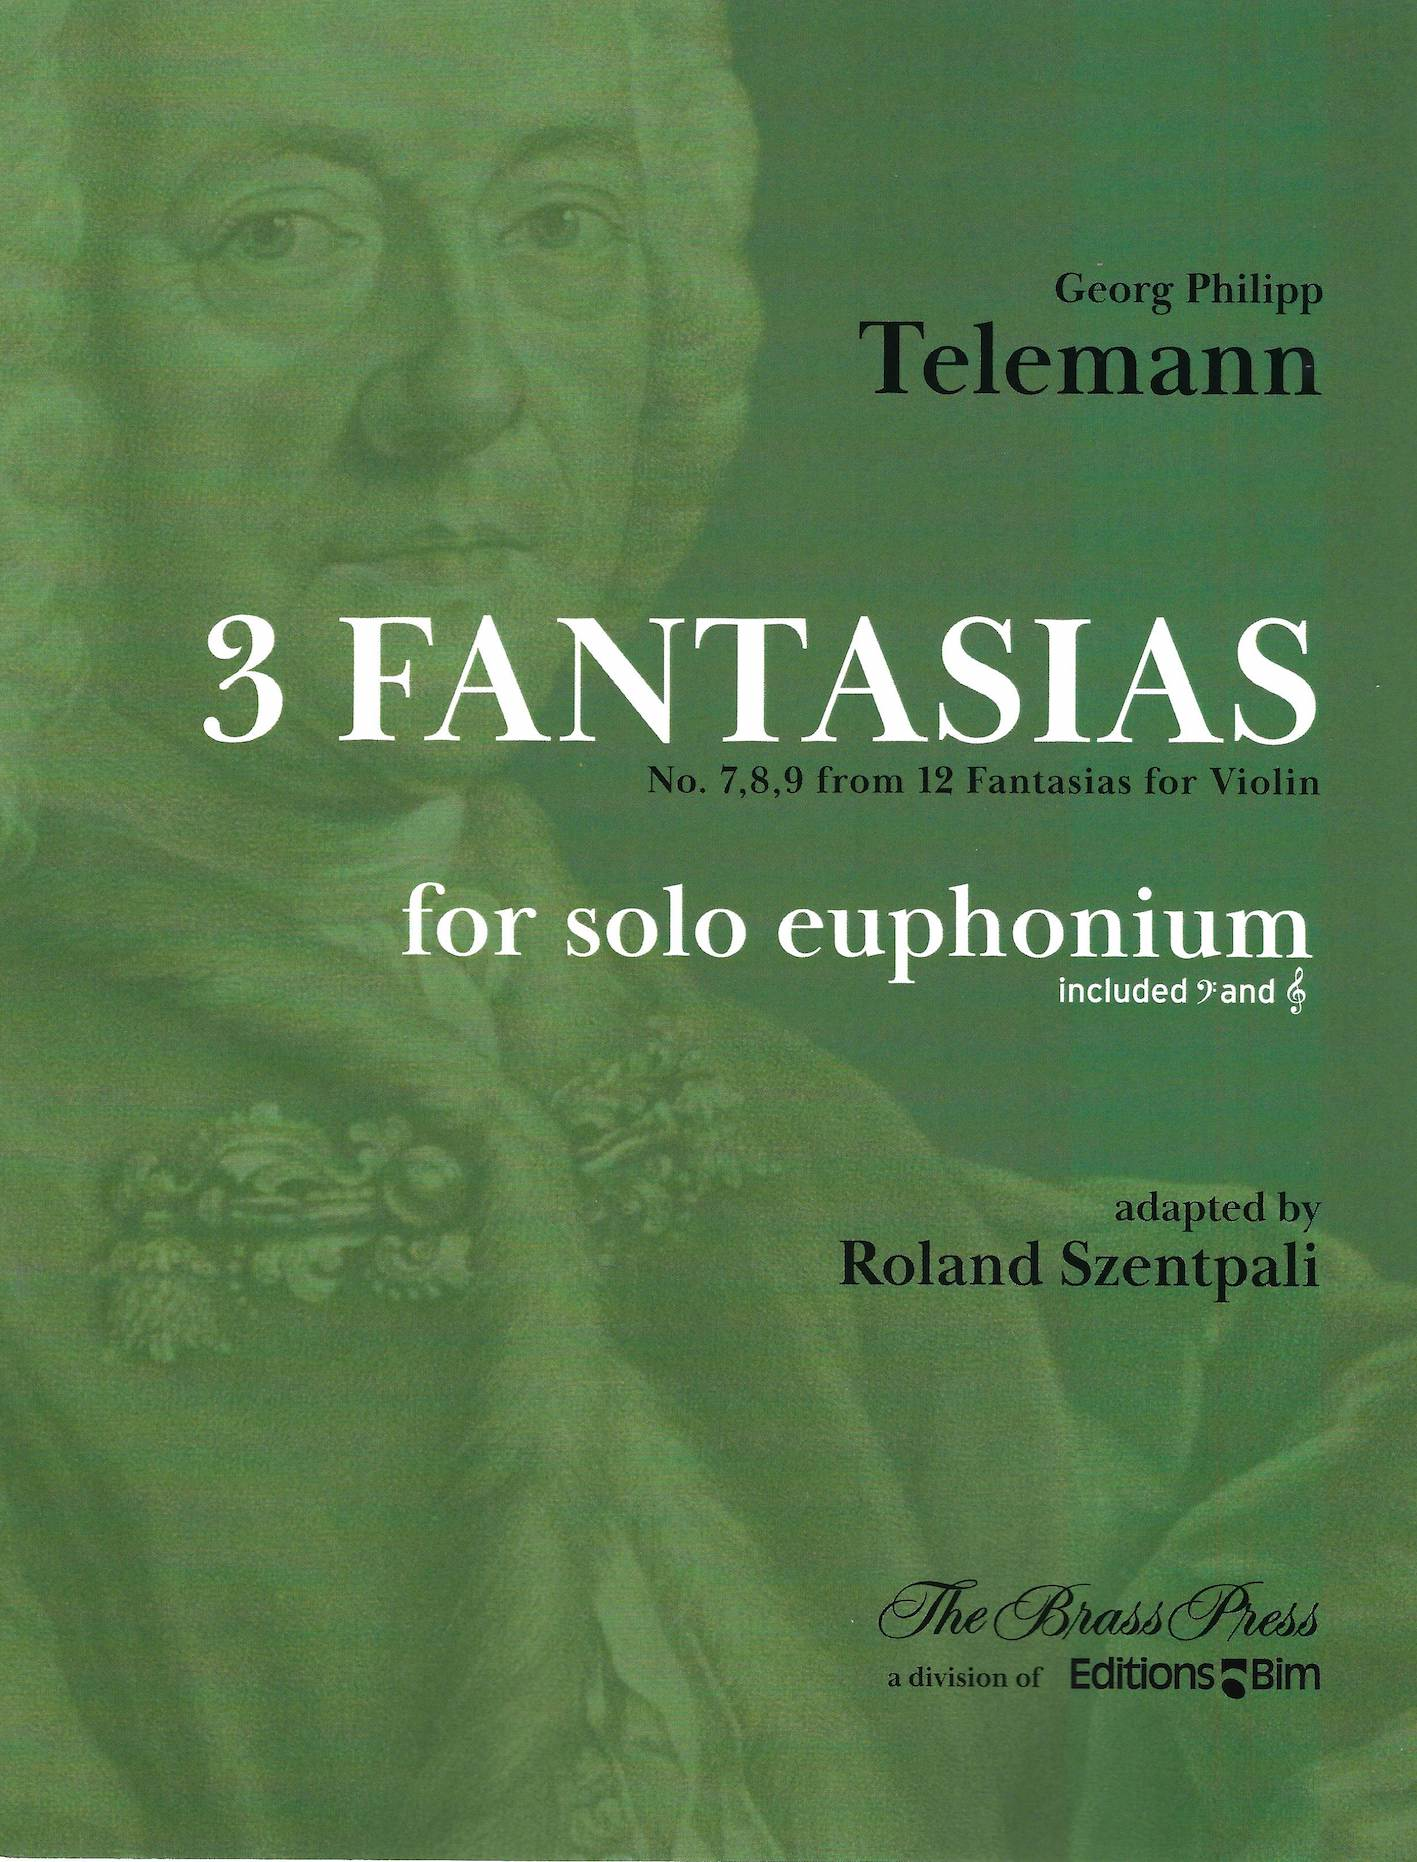 Three Fantasias (from Nos.7,8,9 from 12 Fantasias for Violin) - G.P.Telemann - adapted by Roland Szentpali